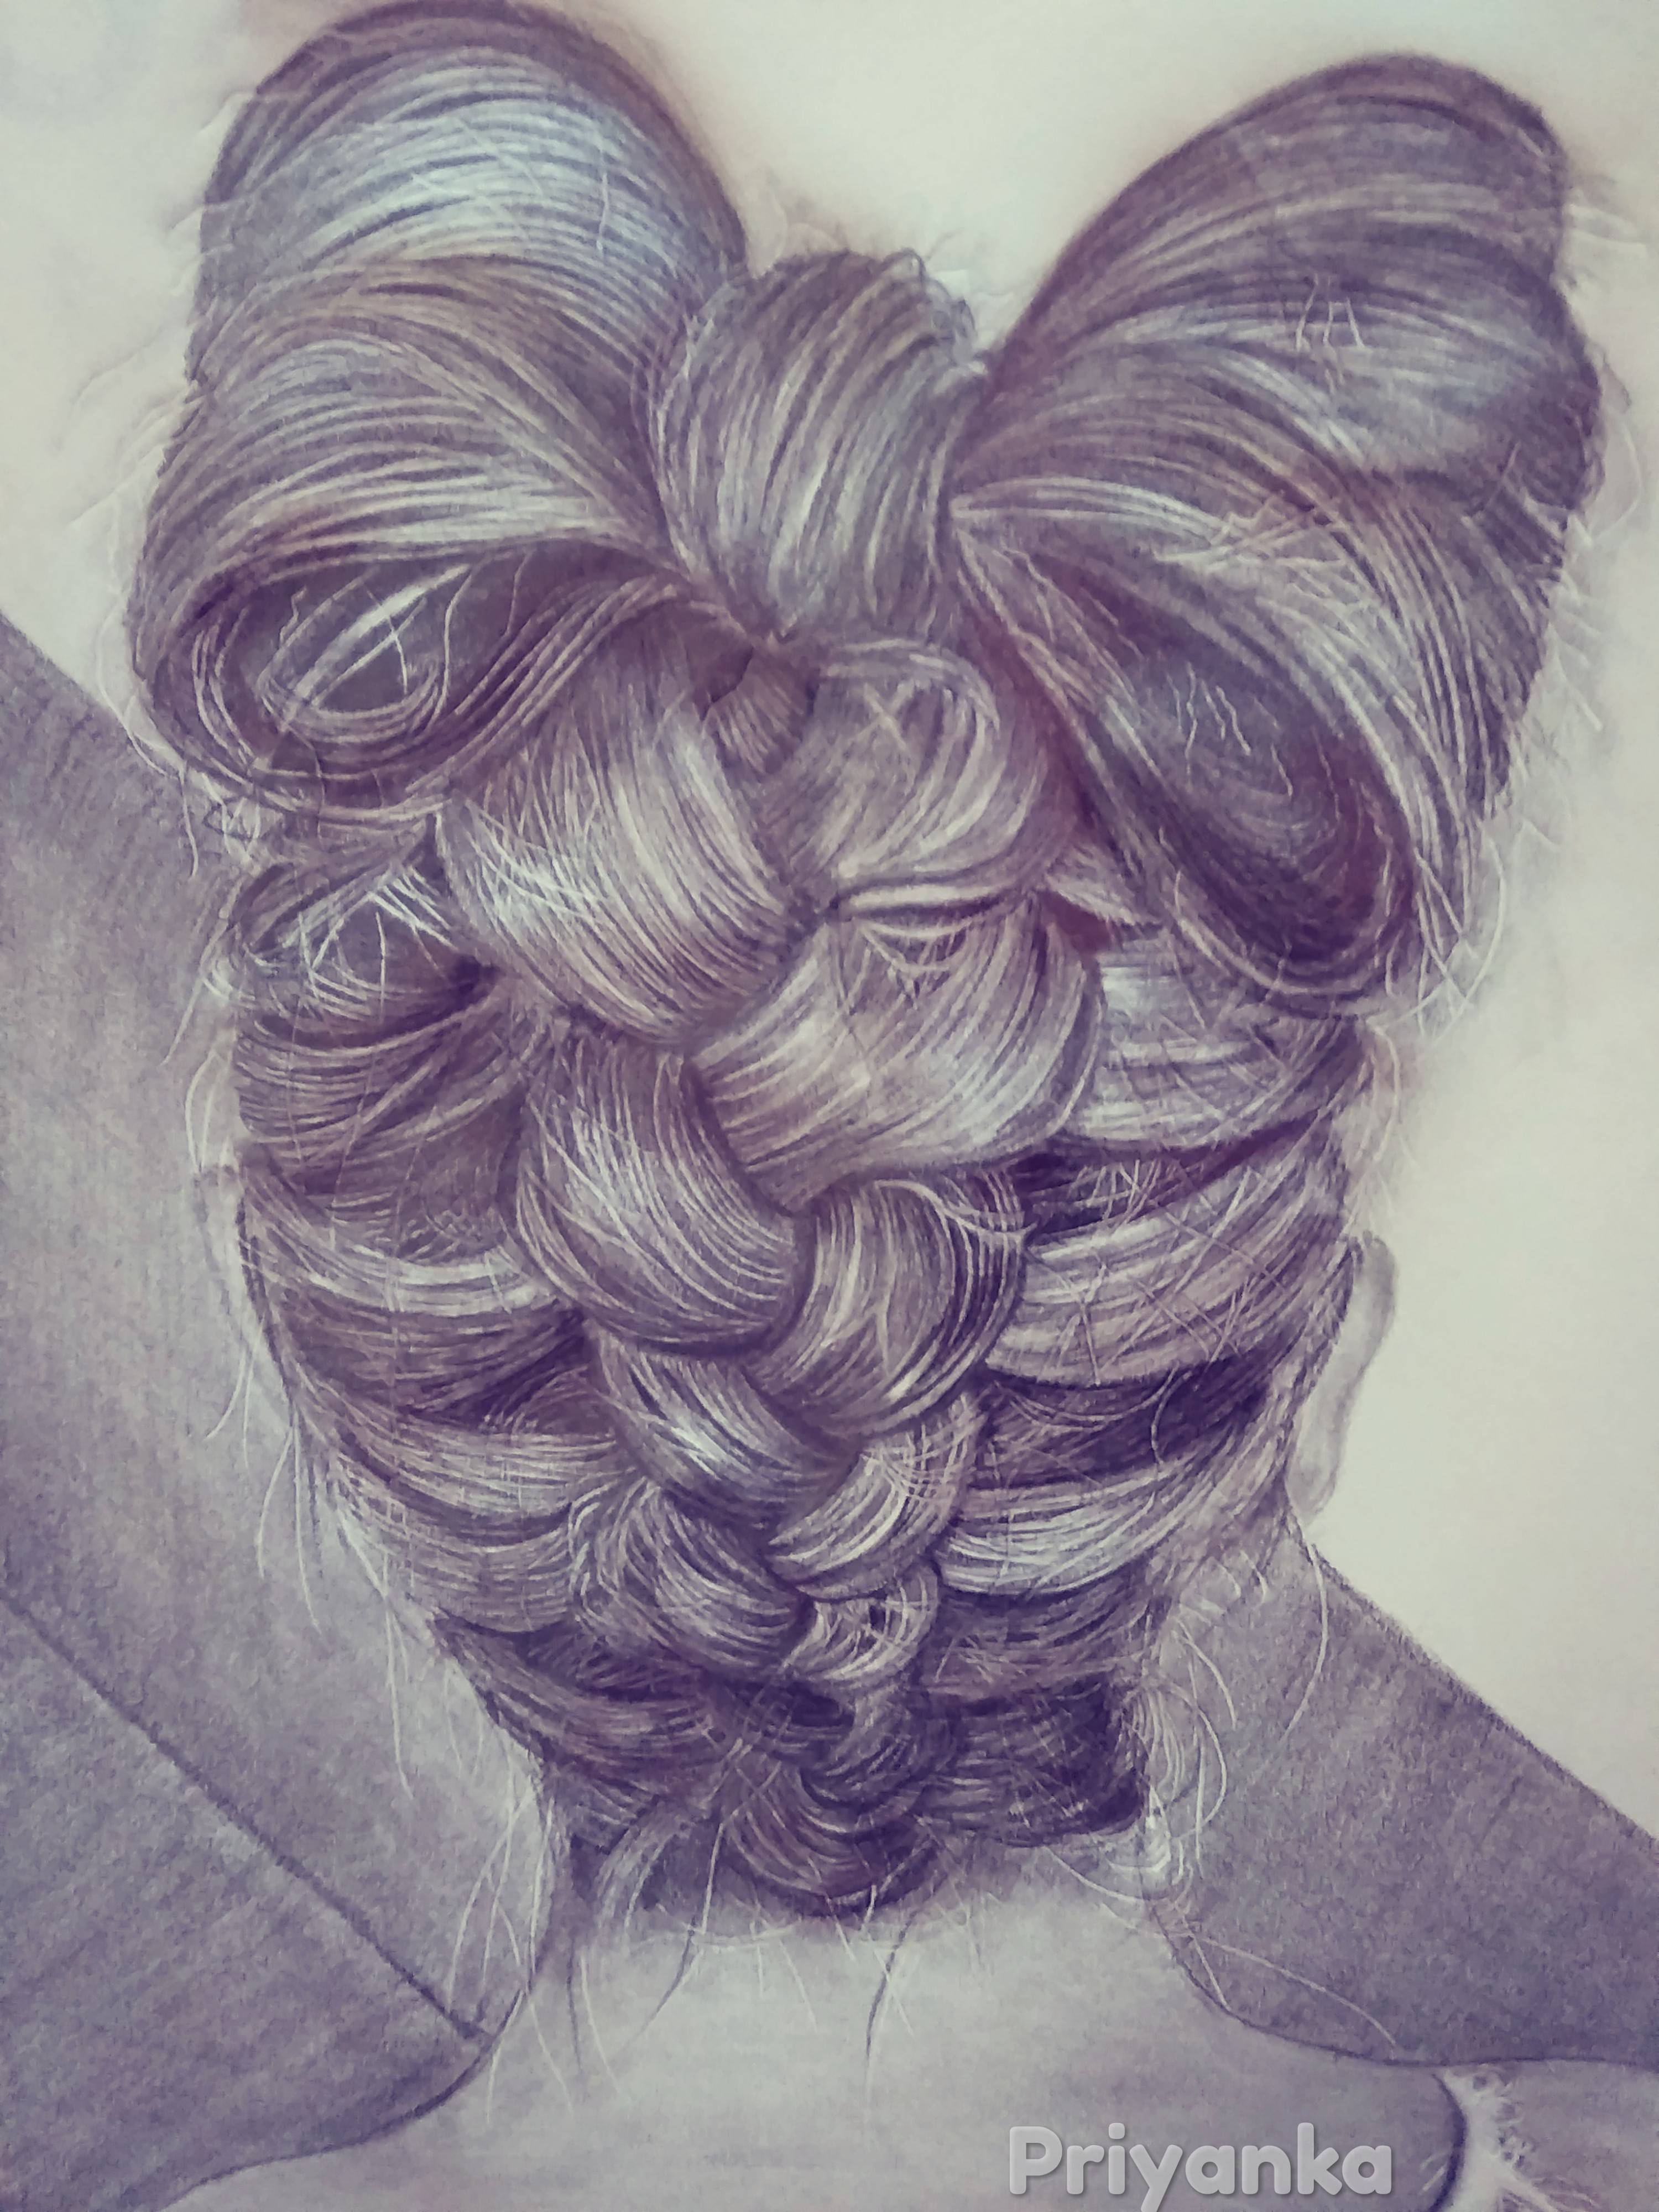 French Braid Digital Print-digital sketches Showflipper